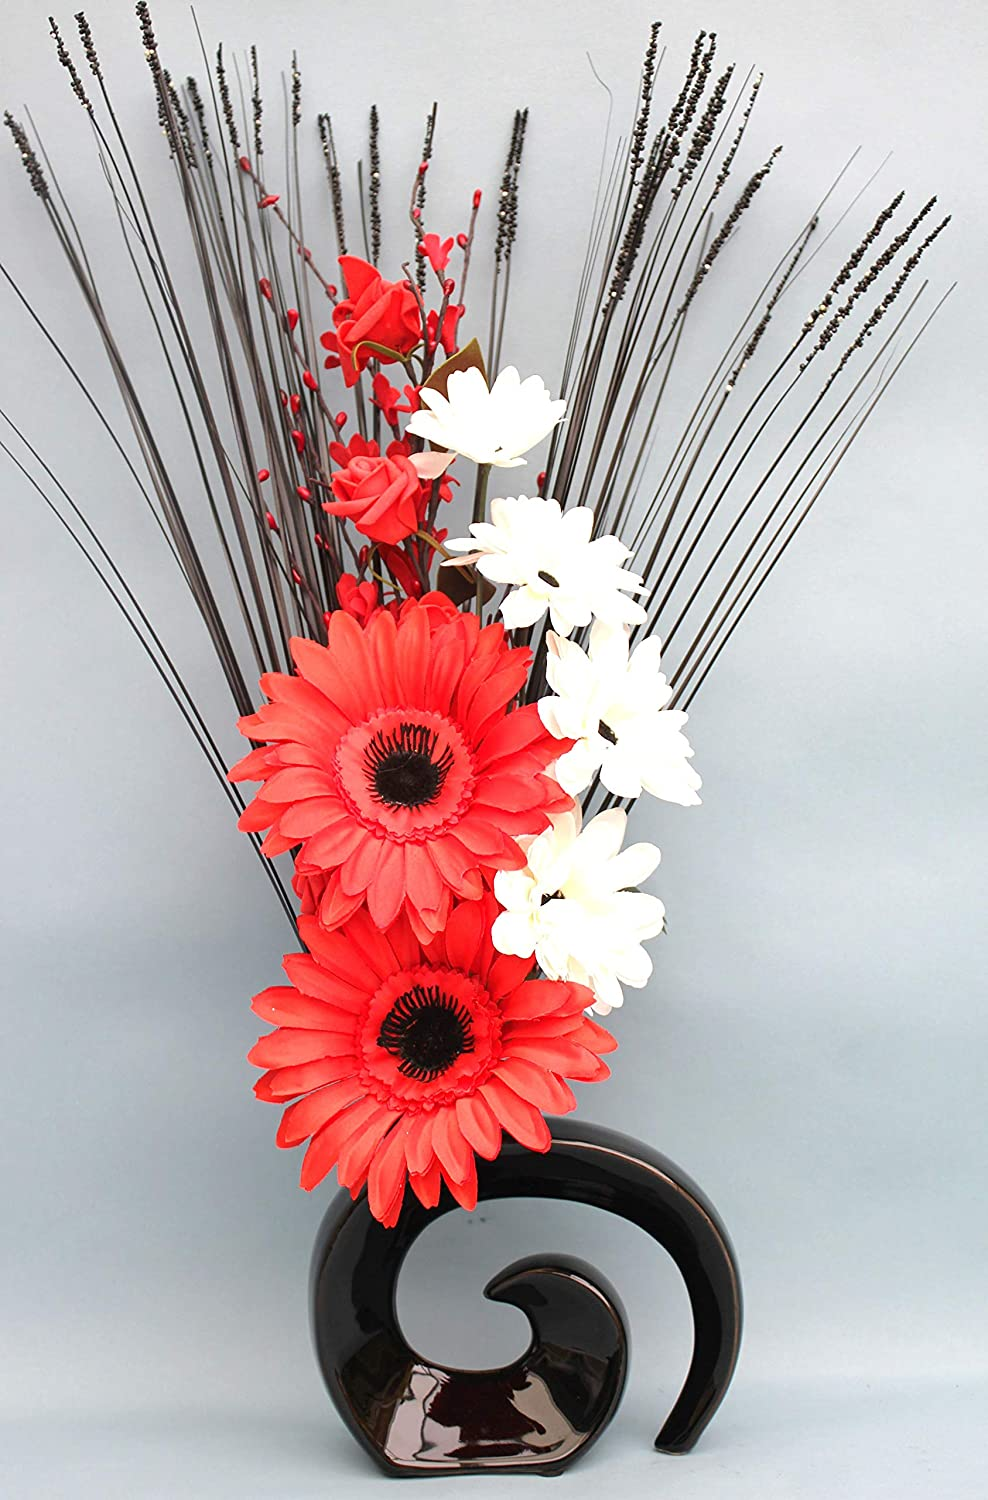 SIMPLY GIFT SOLUTIONS LTD ARTIFICIAL SILK RED GERBERA, WHITE FLOWER, RED ROSE & GRASSES IN BLACK FOSSIL CERAMIC VASE